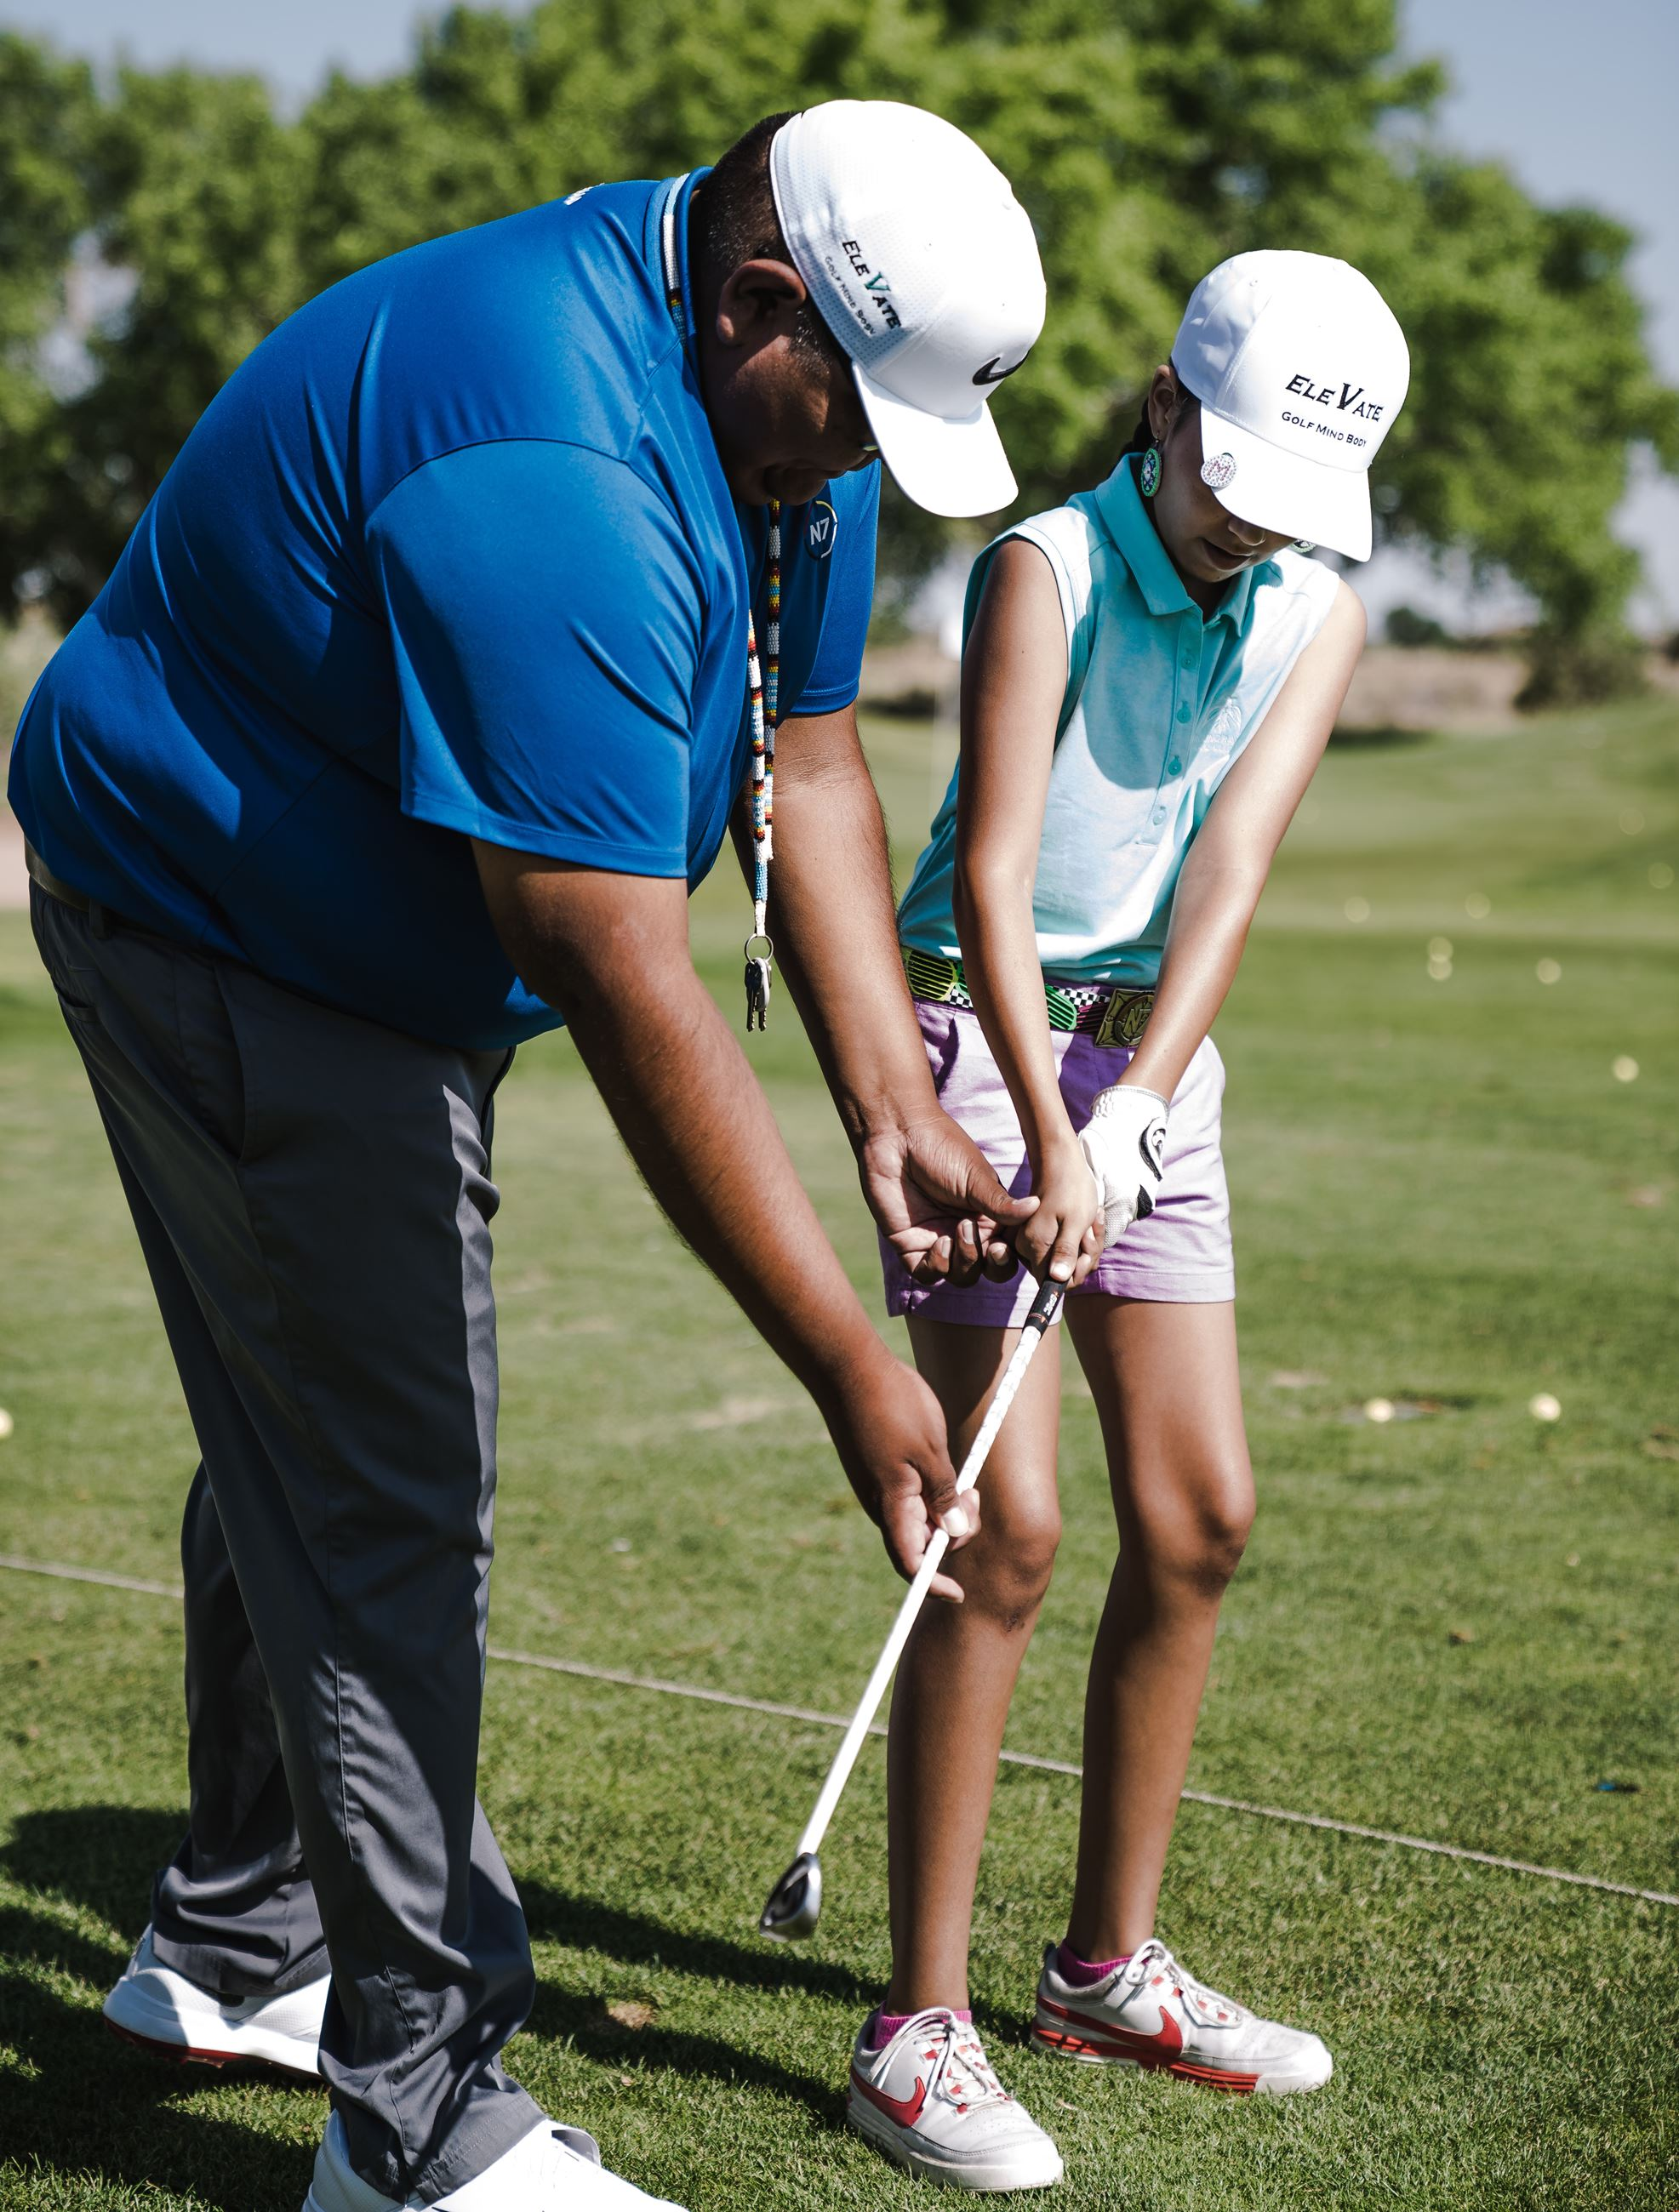 Golf coach teaching child how to swing a golf club